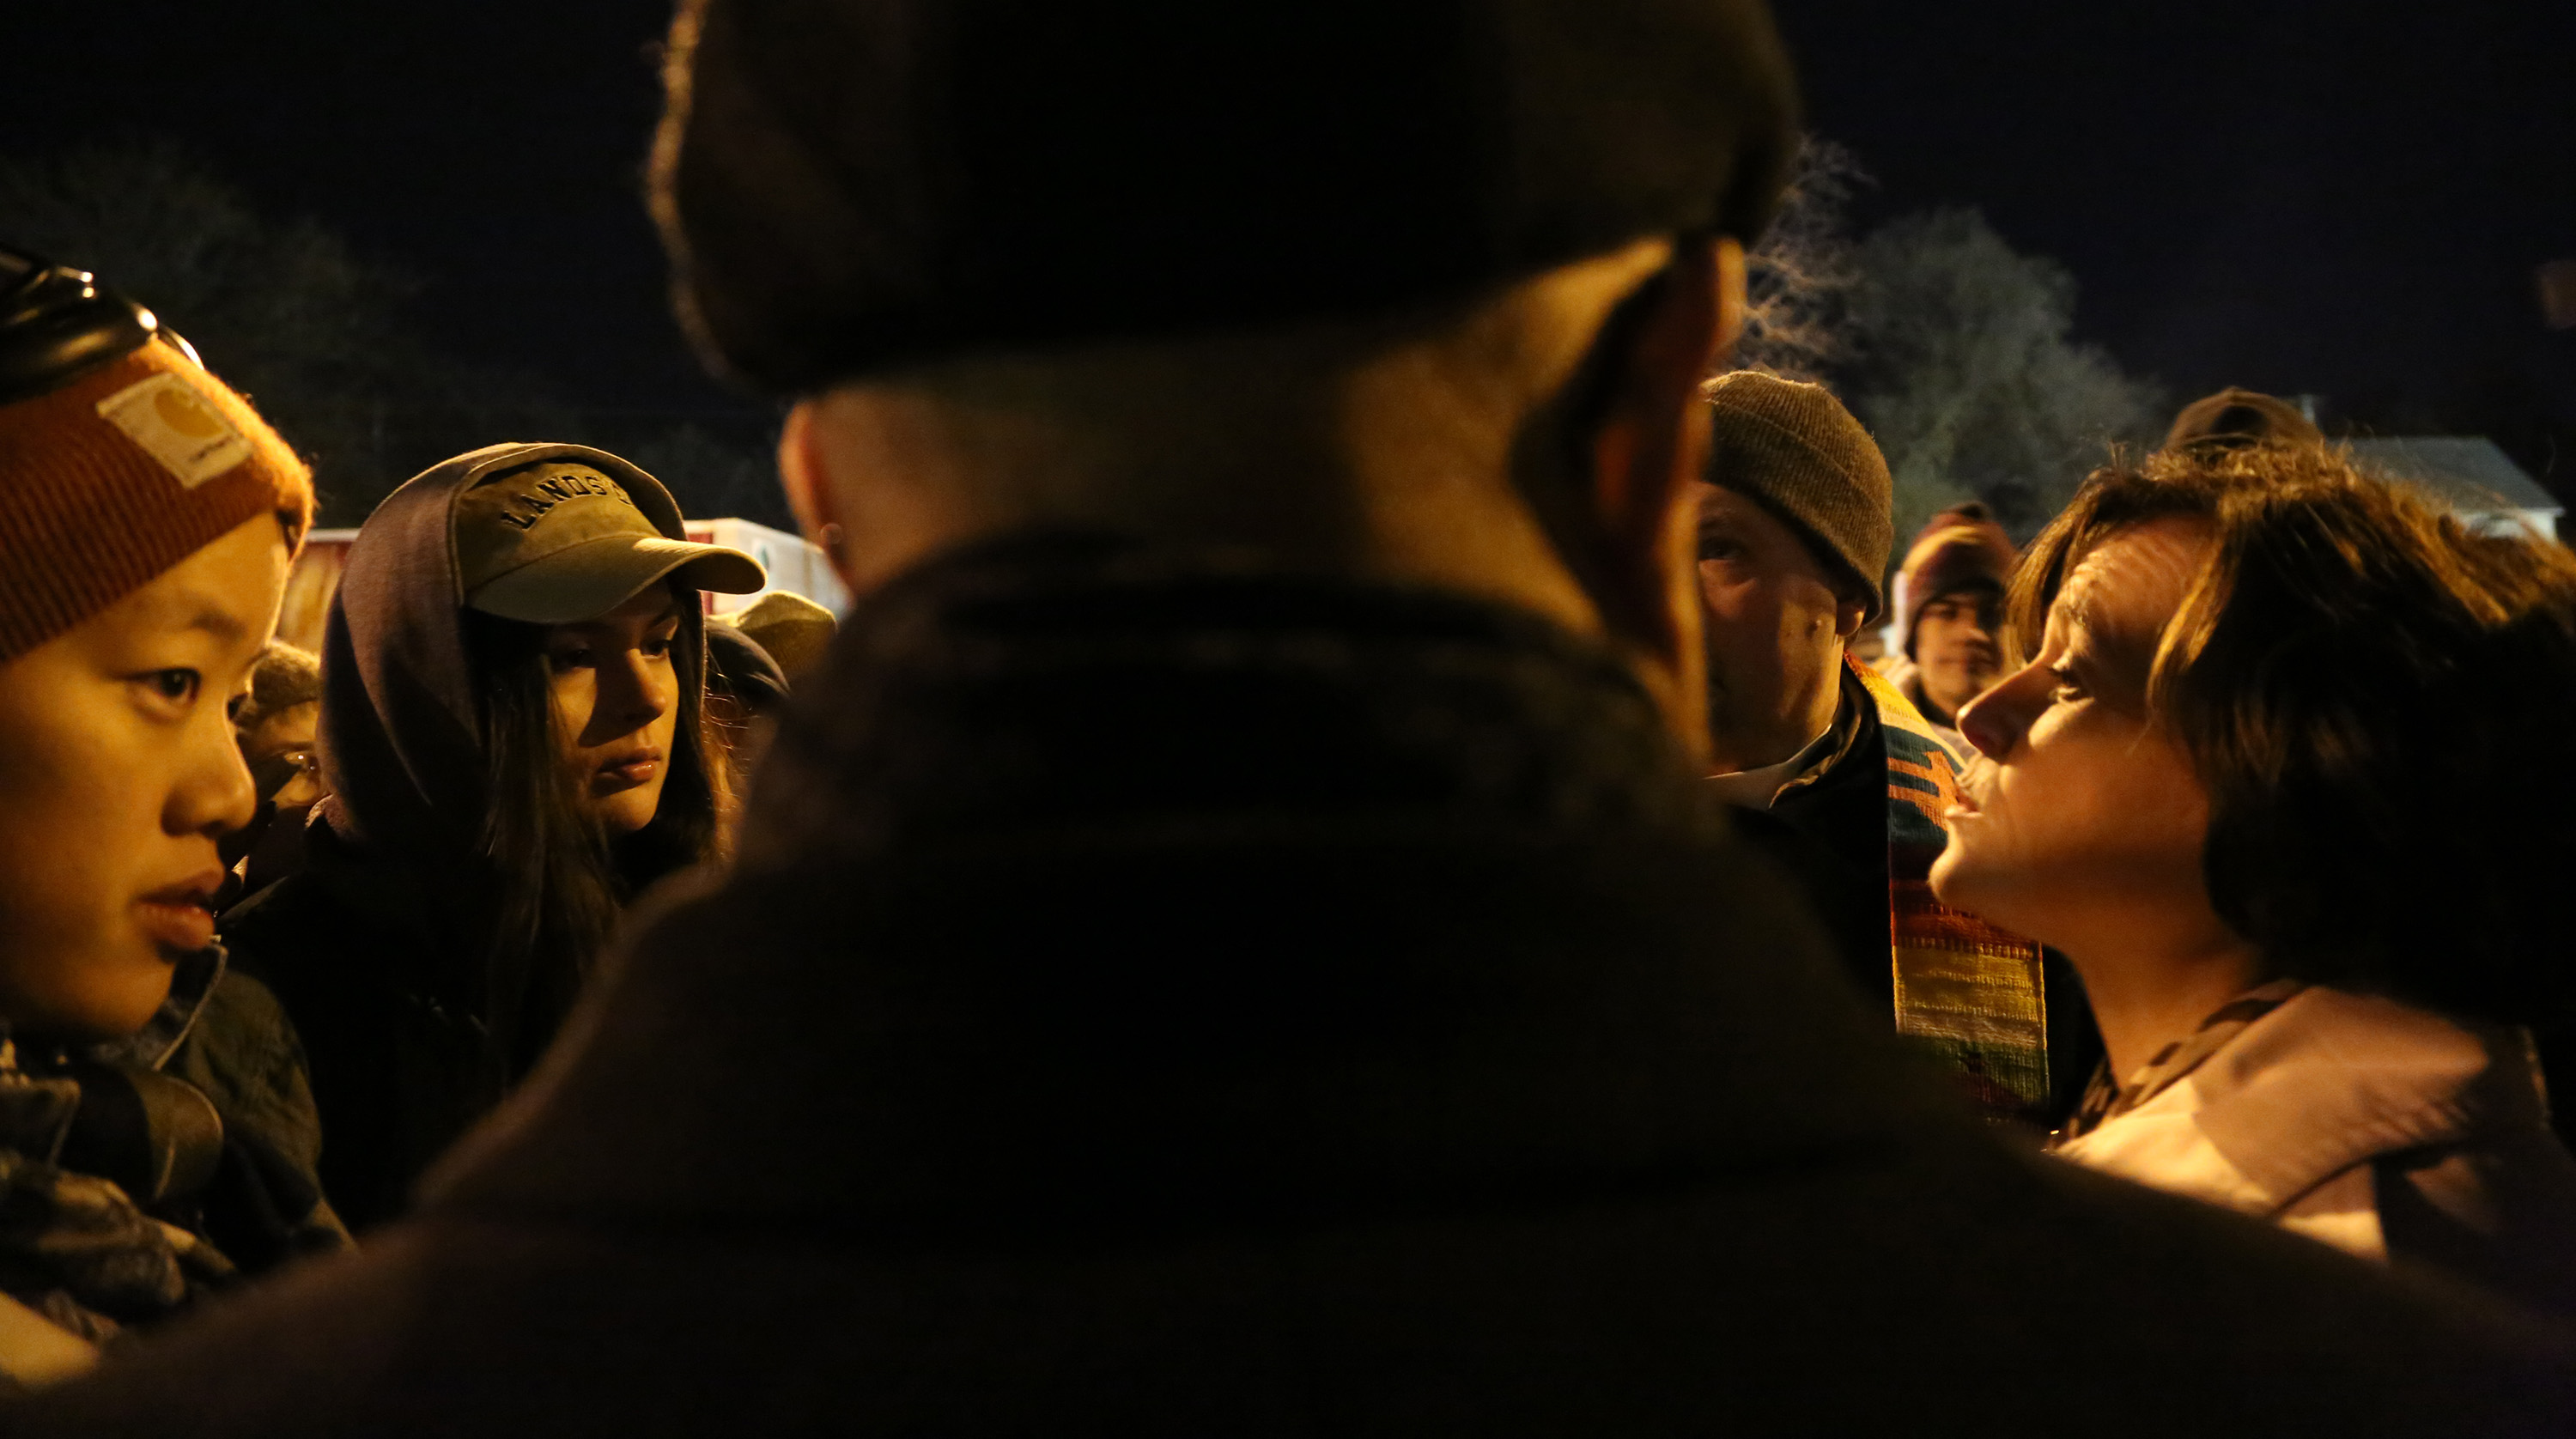 Minneapolis Mayor Betsy Hodges got peppered with questions from protestors about police violence. ] (KYNDELL HARKNESS/STAR TRIBUNE) kyndell.harkness@startribune.com Protesters in front of Minneapolis Fourth Precinct in Minneapolis Min., Thursday November 19, 2015. ORG XMIT: MIN1511192119441166